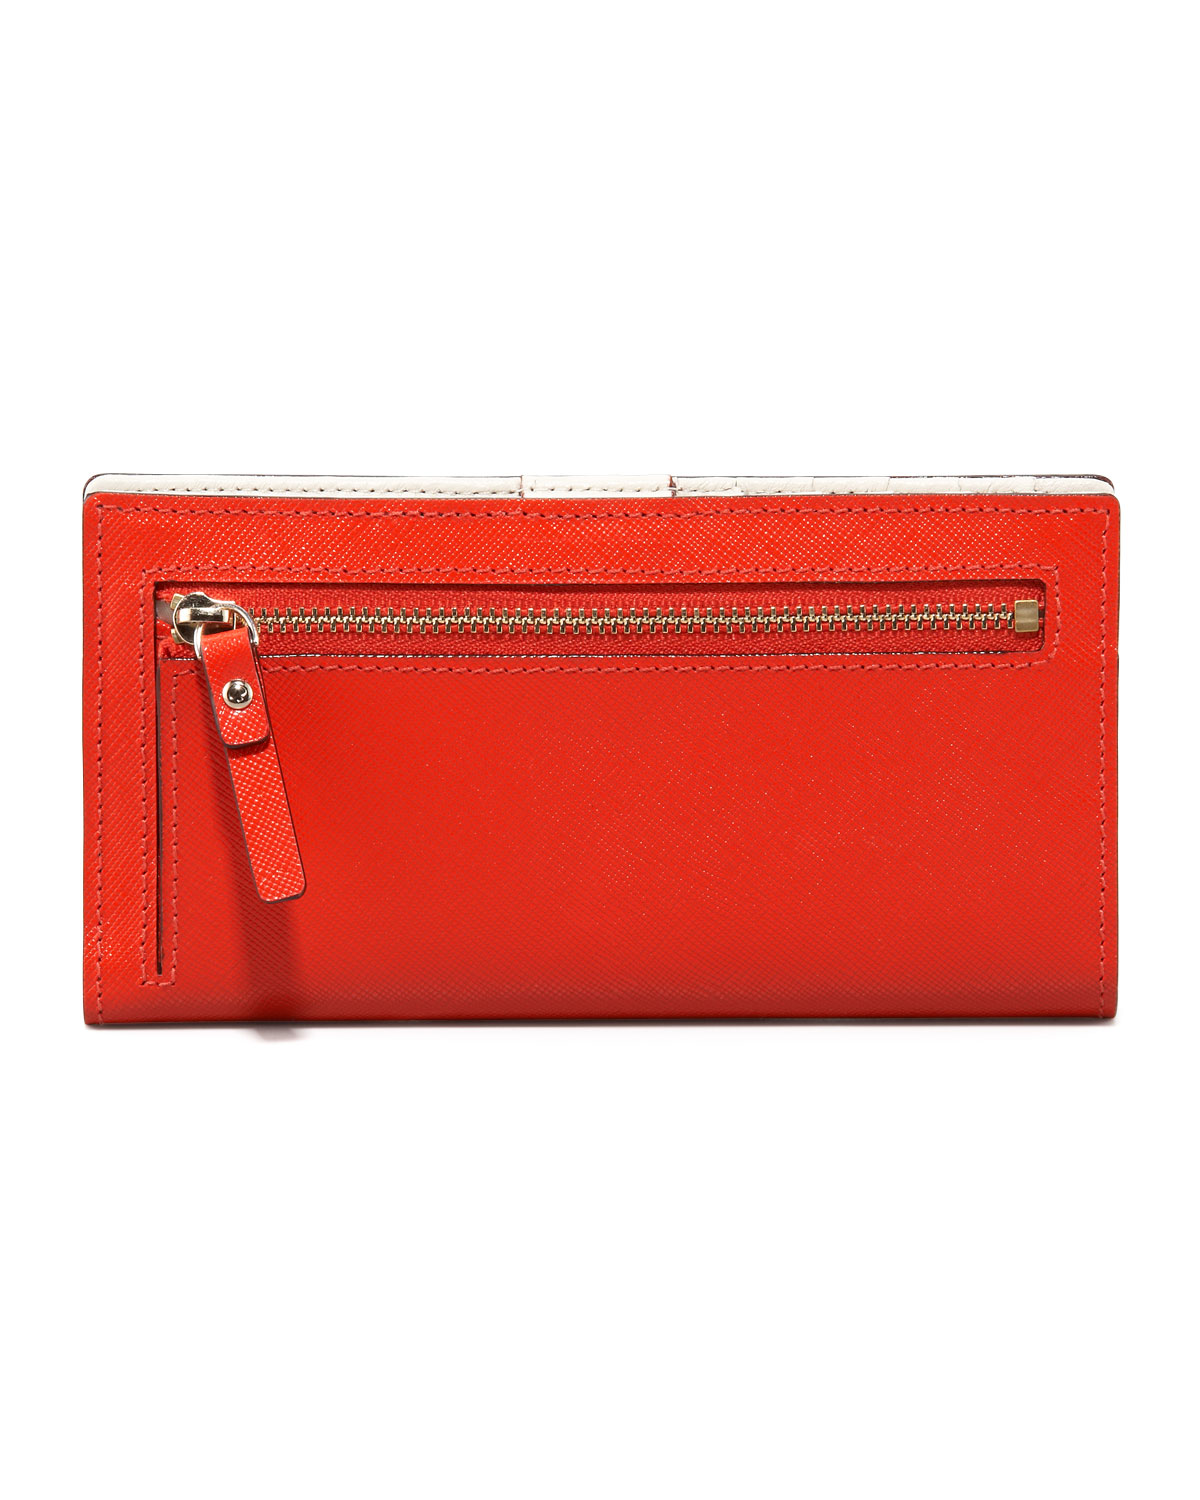 stacy mikas pond continental wallet   kate spade new york